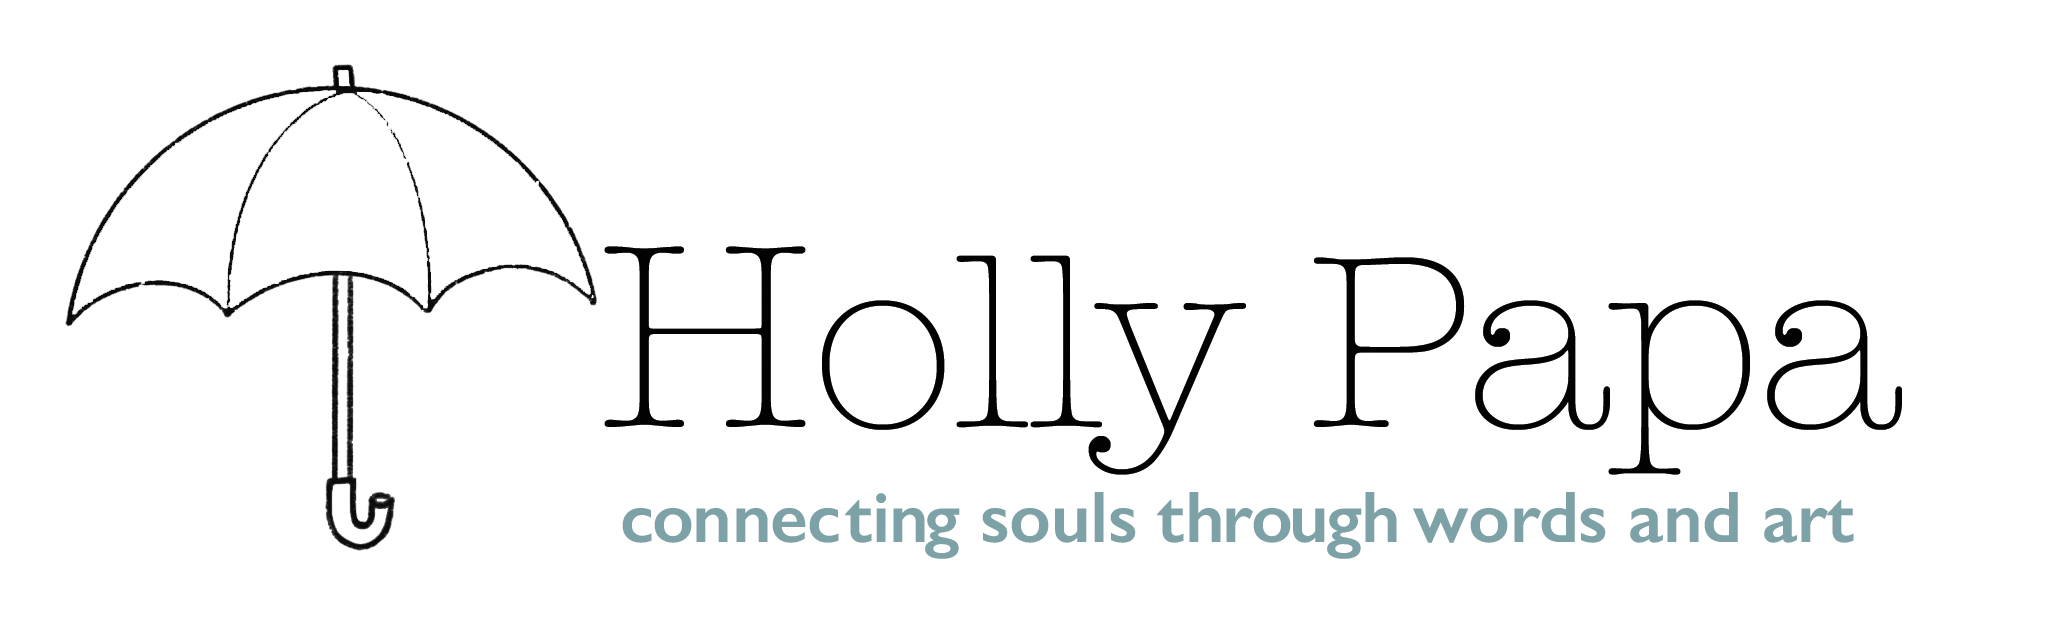 Holly Papa Logo: Connecting Souls Through Words & Art